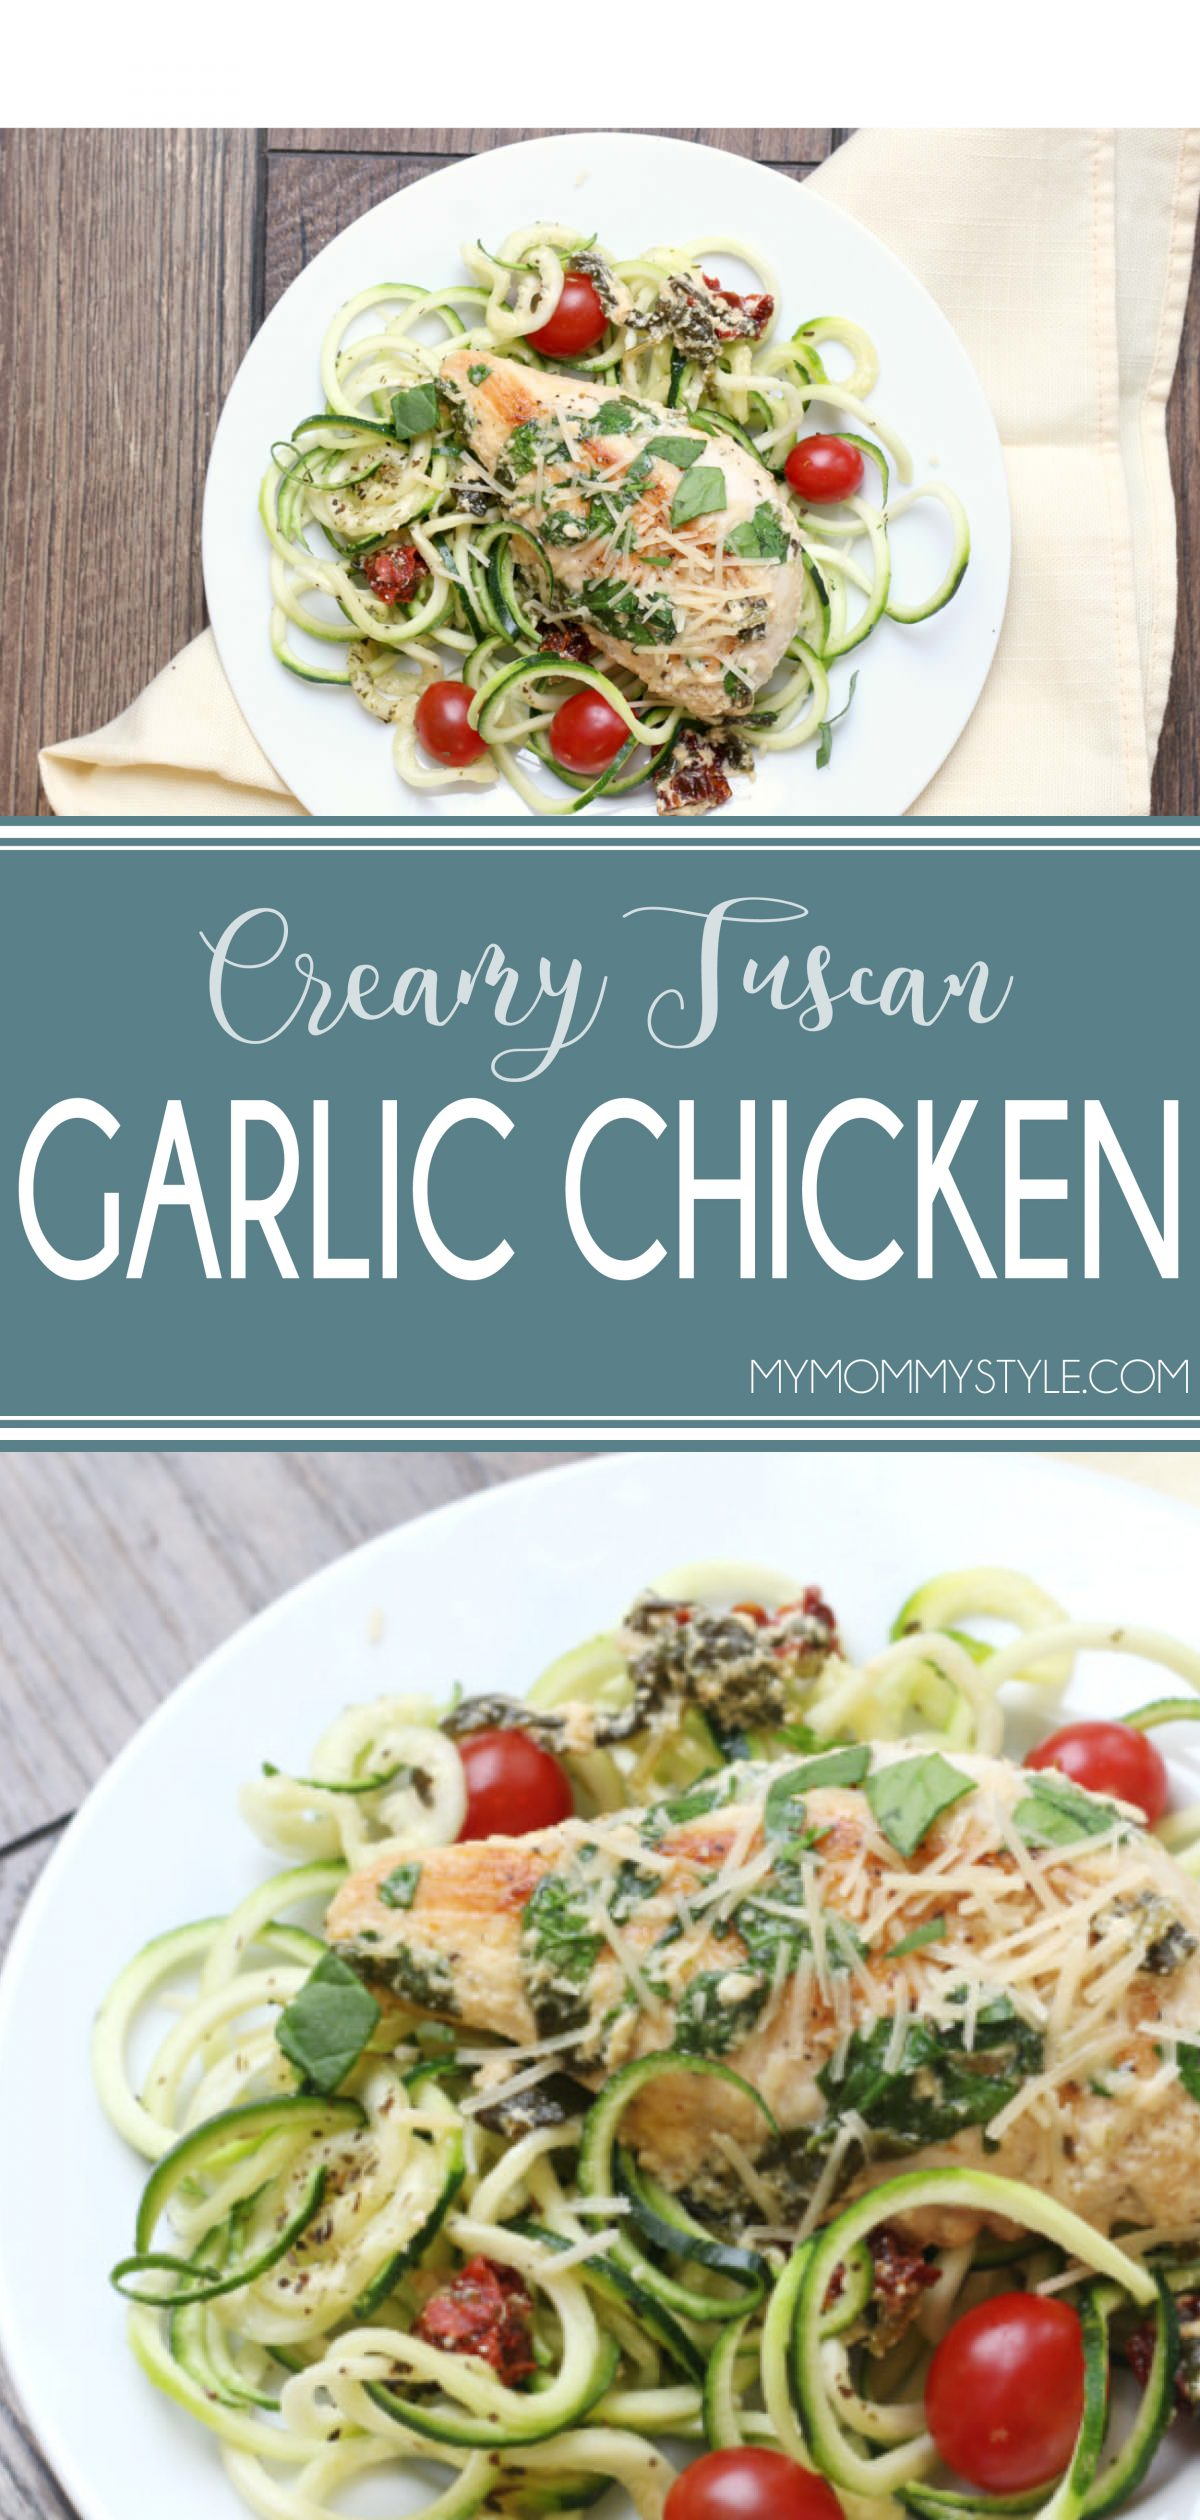 This creamy garlic chicken is one of our favorite lean and green recipes! It's colorful and packed full of flavor without the guilt! via @mymommystyle